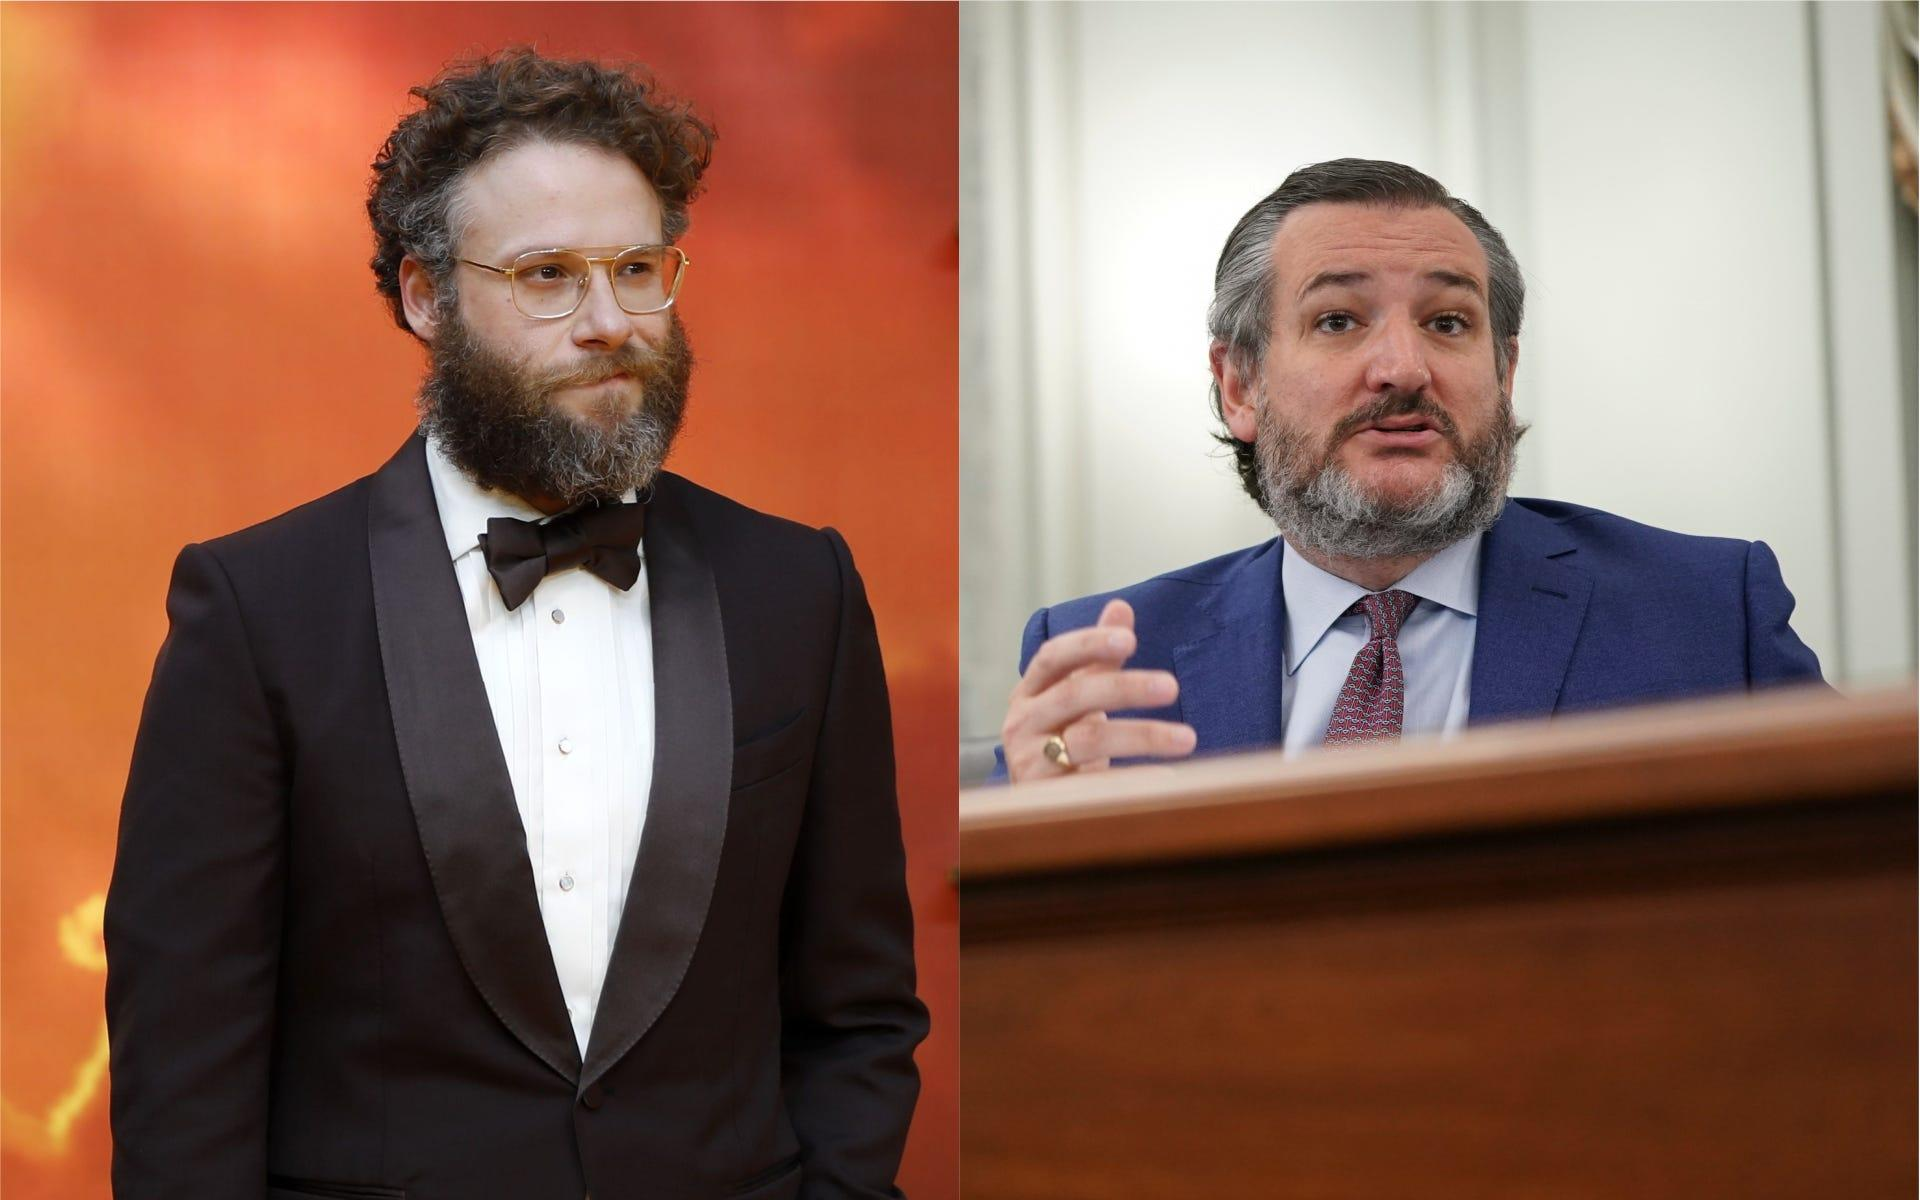 Seth Rogen, Ted Cruz swap insults on Twitter over Paris Climate Accord, Disney's 'Fantasia'